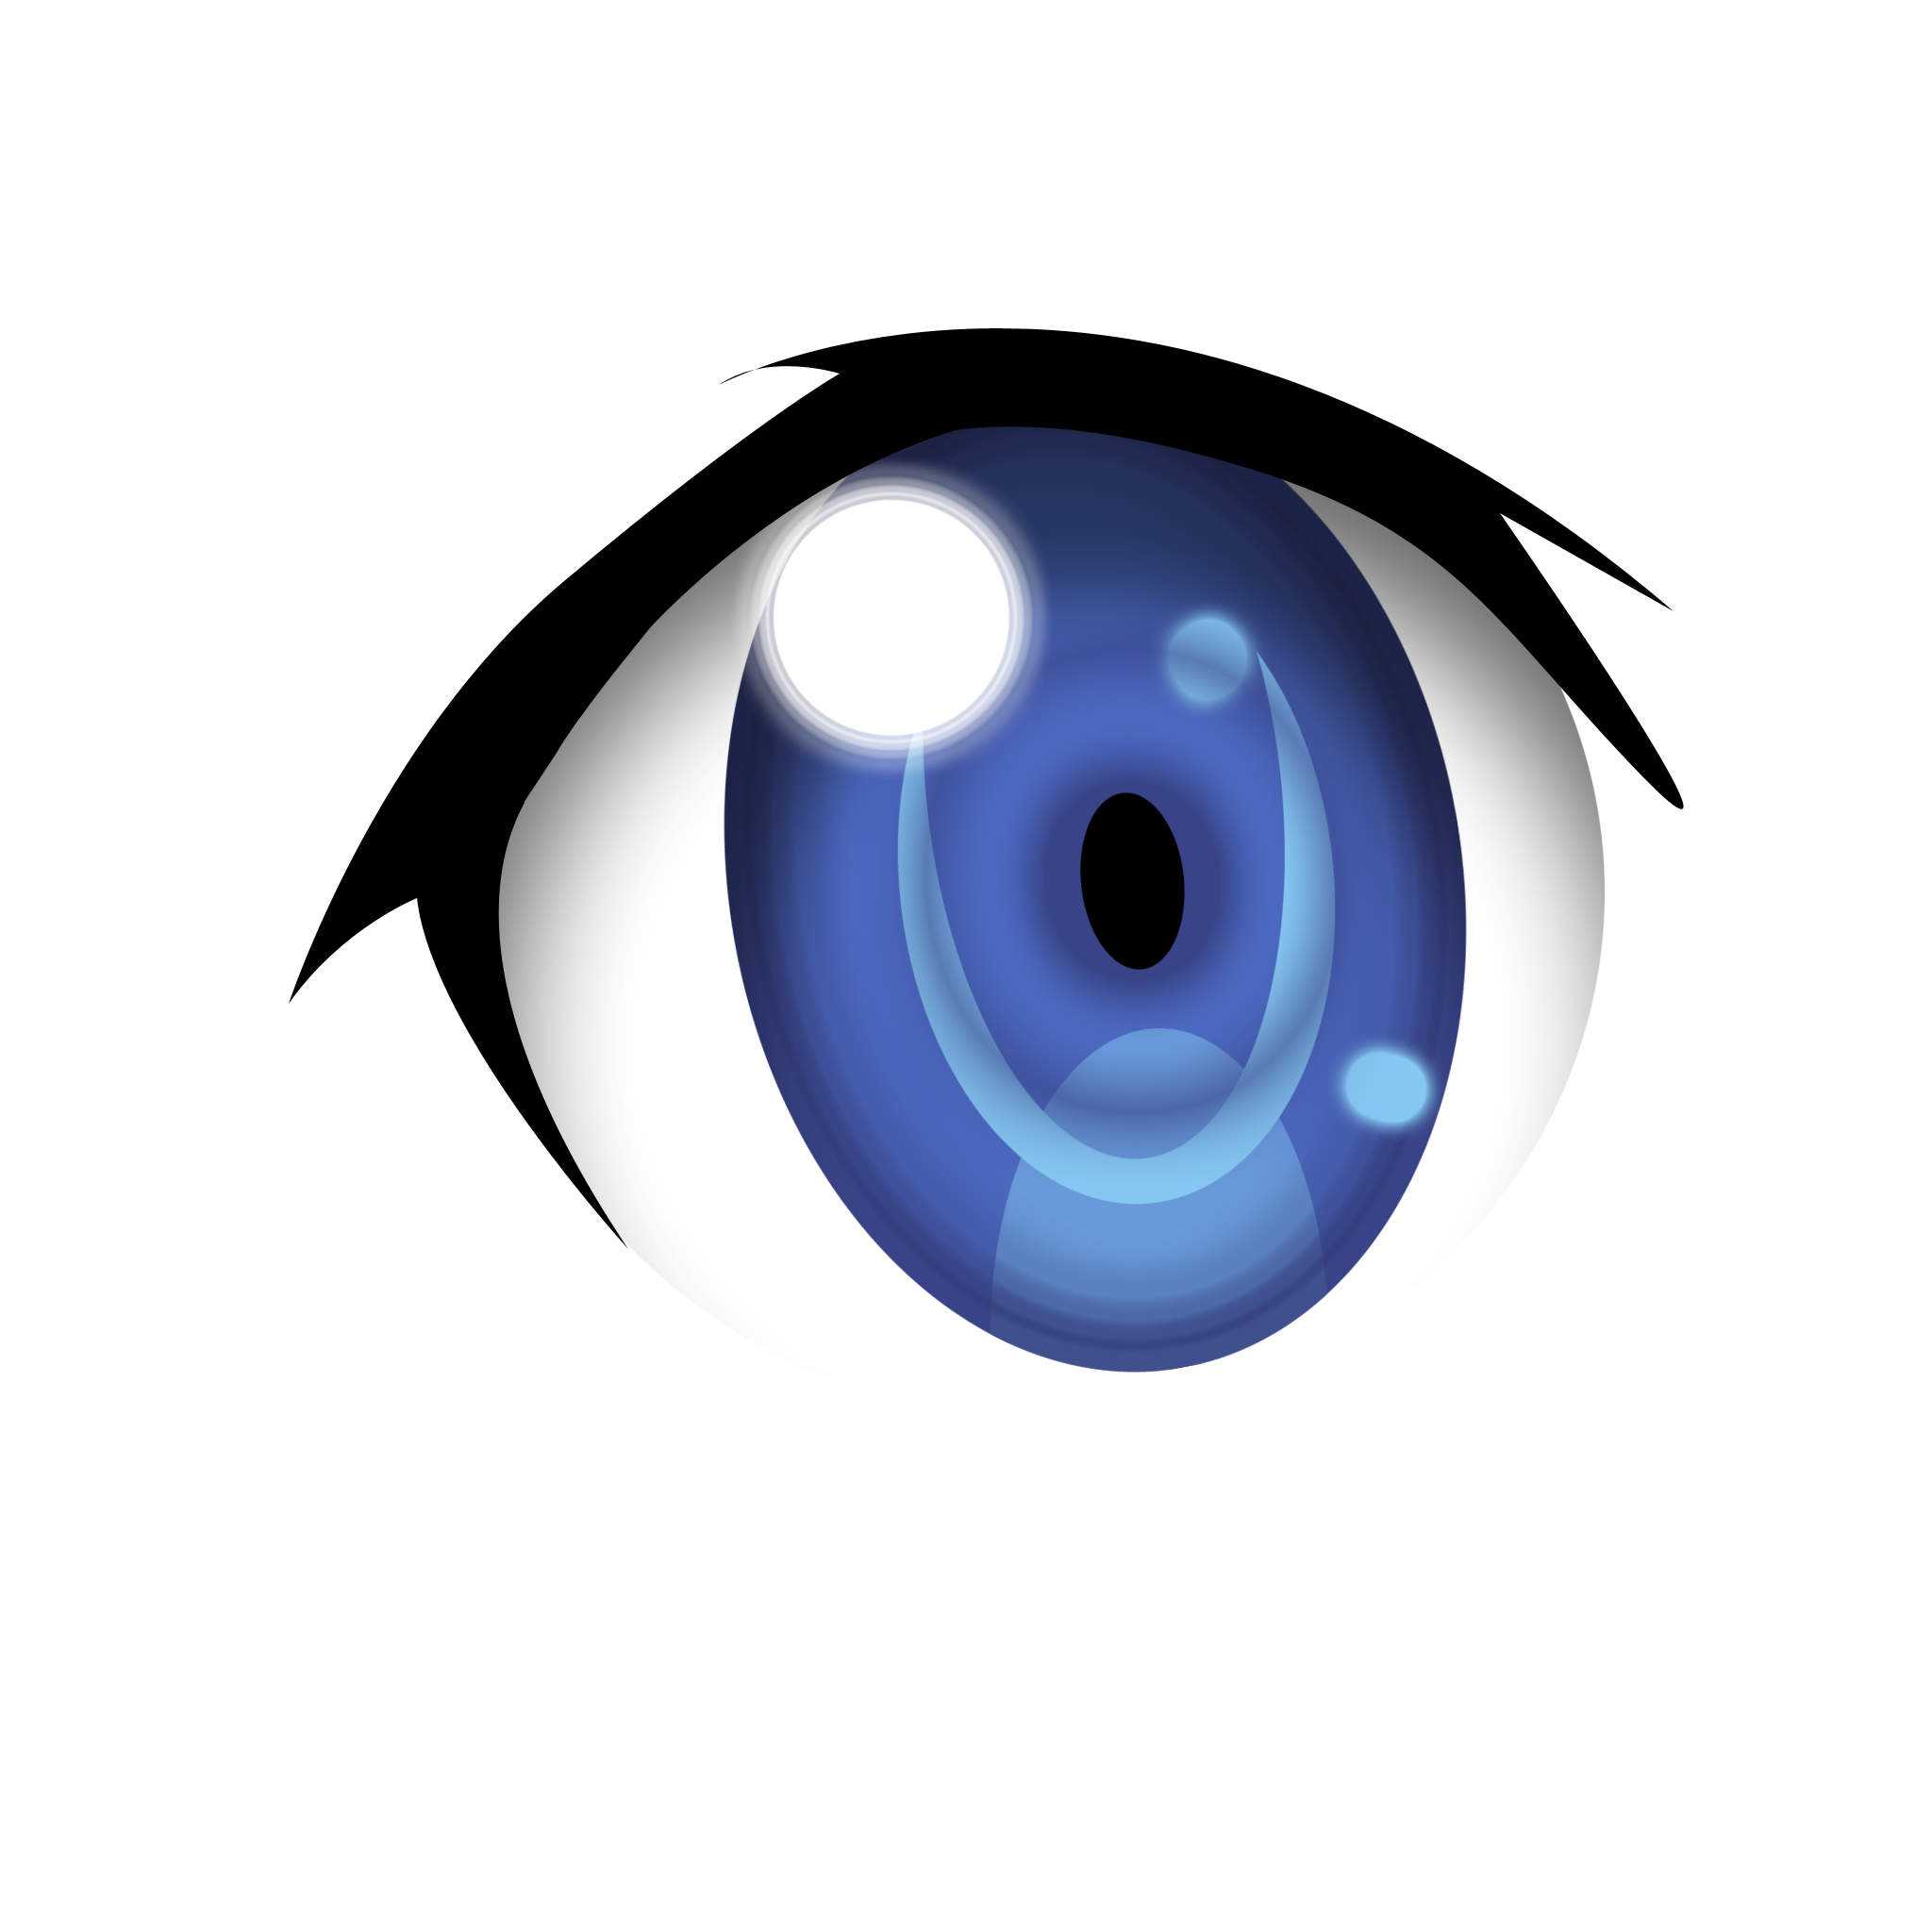 Blue Eyes clipart simple For the Unreal a for